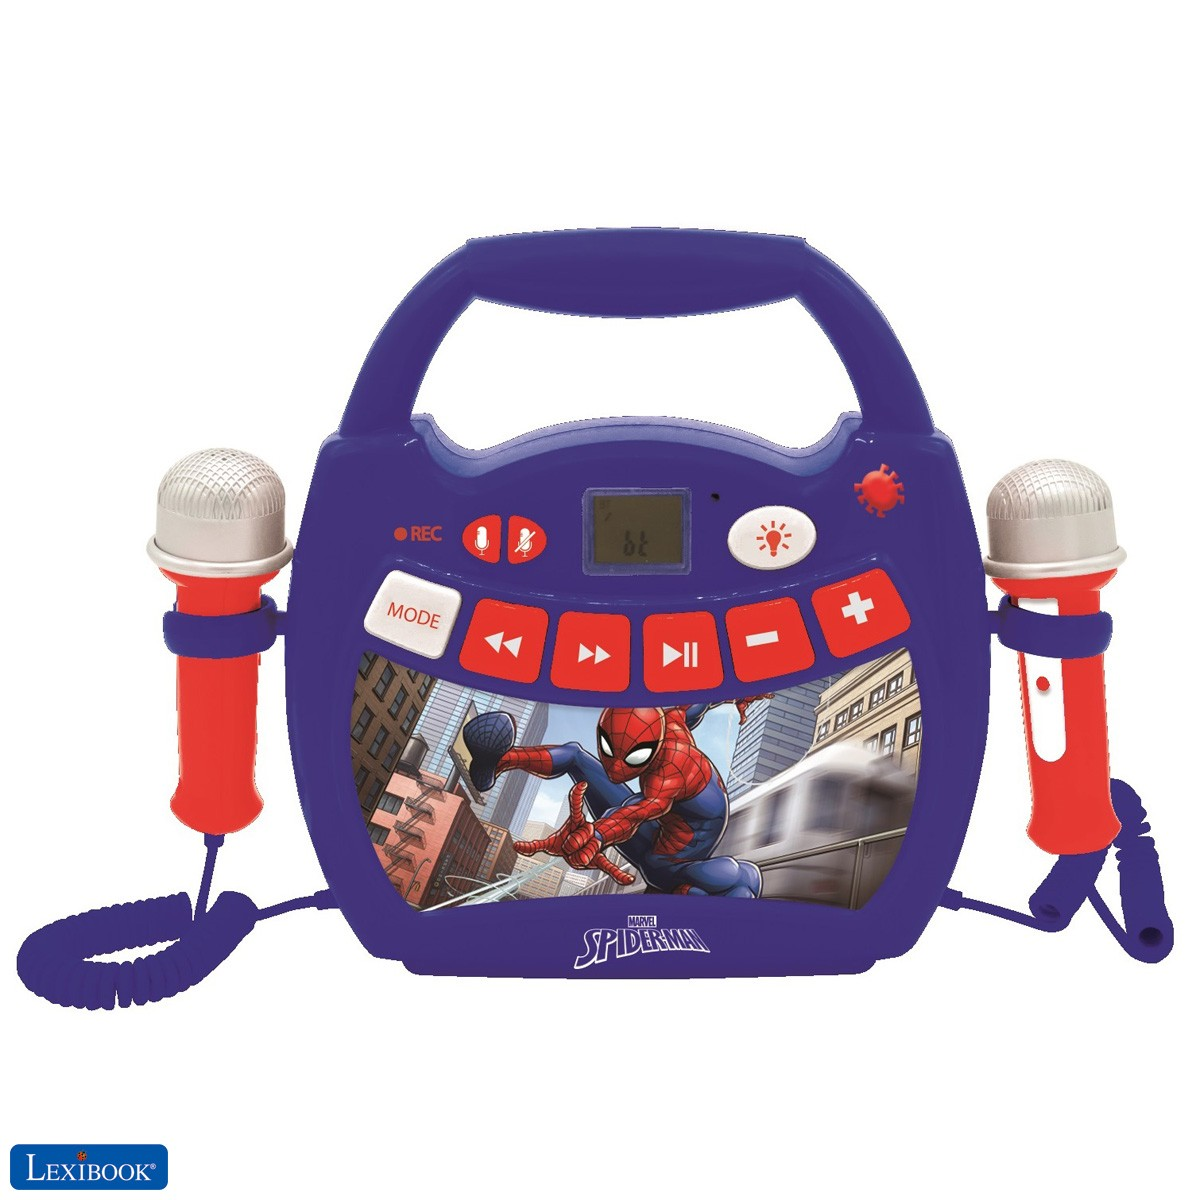 Spiderman - Karaoke portable digital player with 2 mics